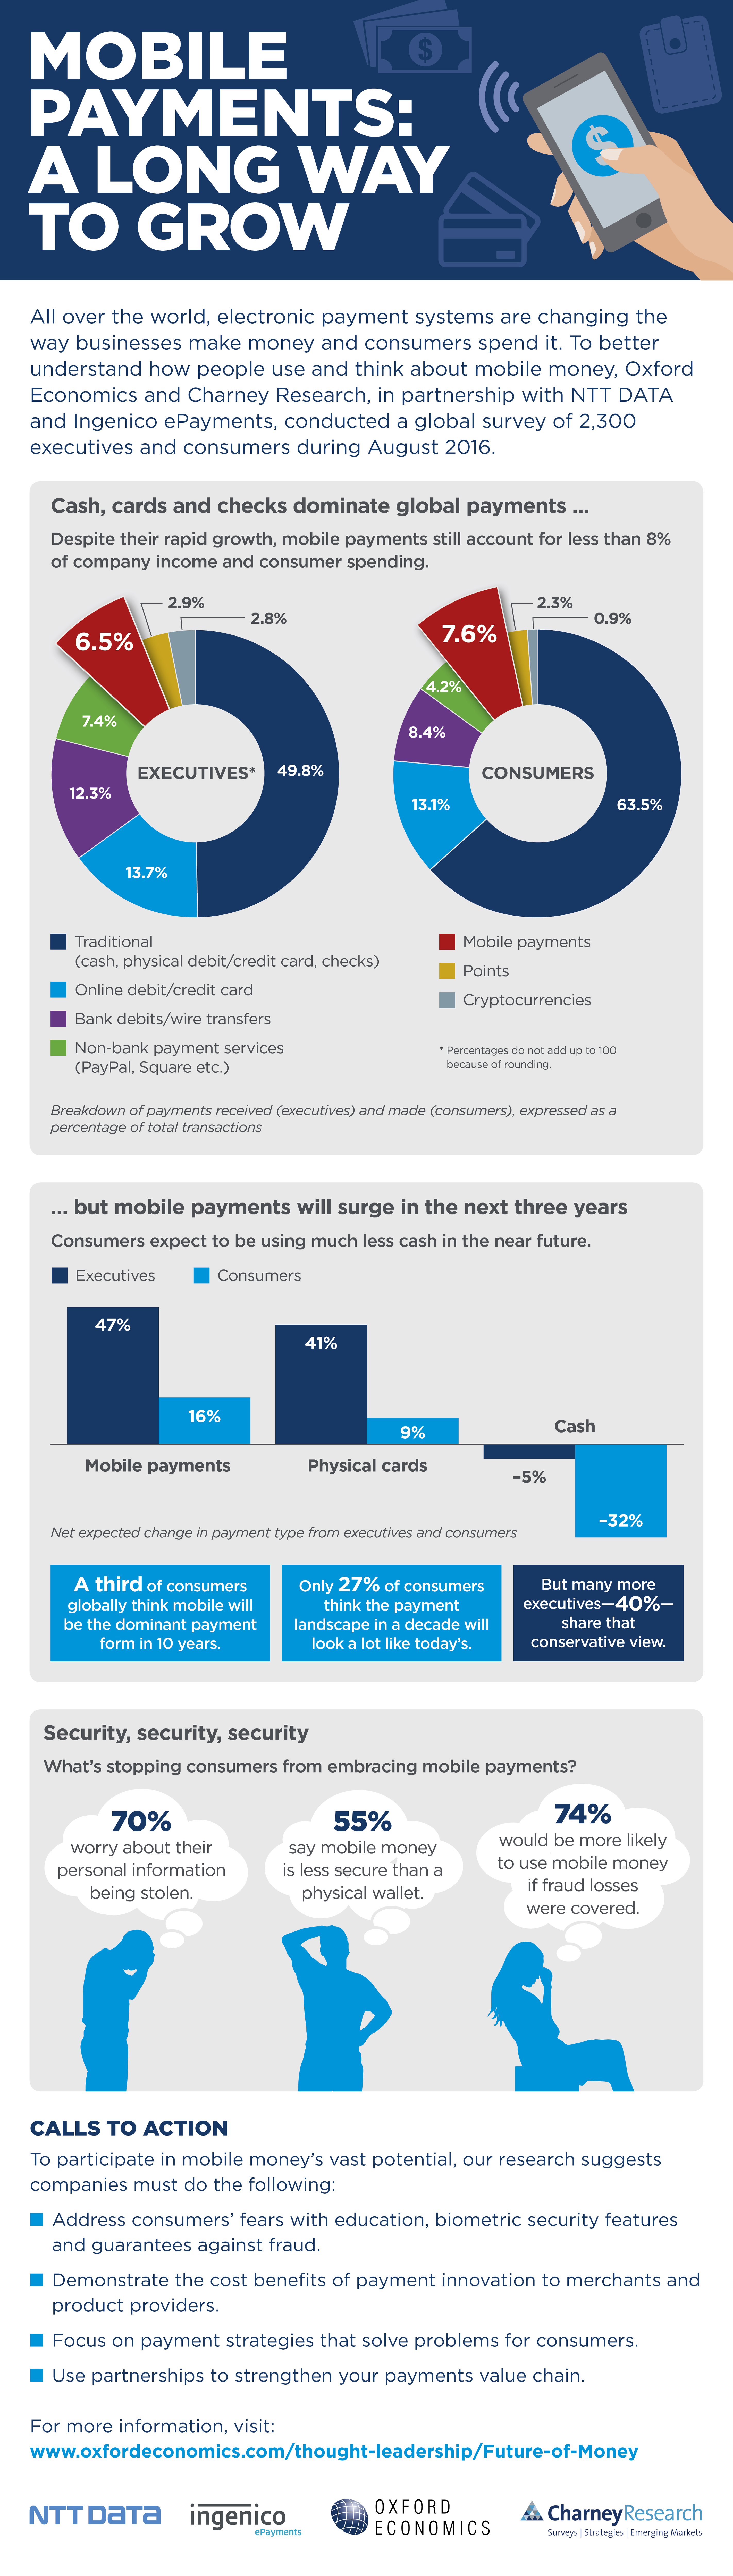 The Future of Money research finds electronic payment systems are changing the way businesses make money and consumers spend it. (Photo: Business Wire)